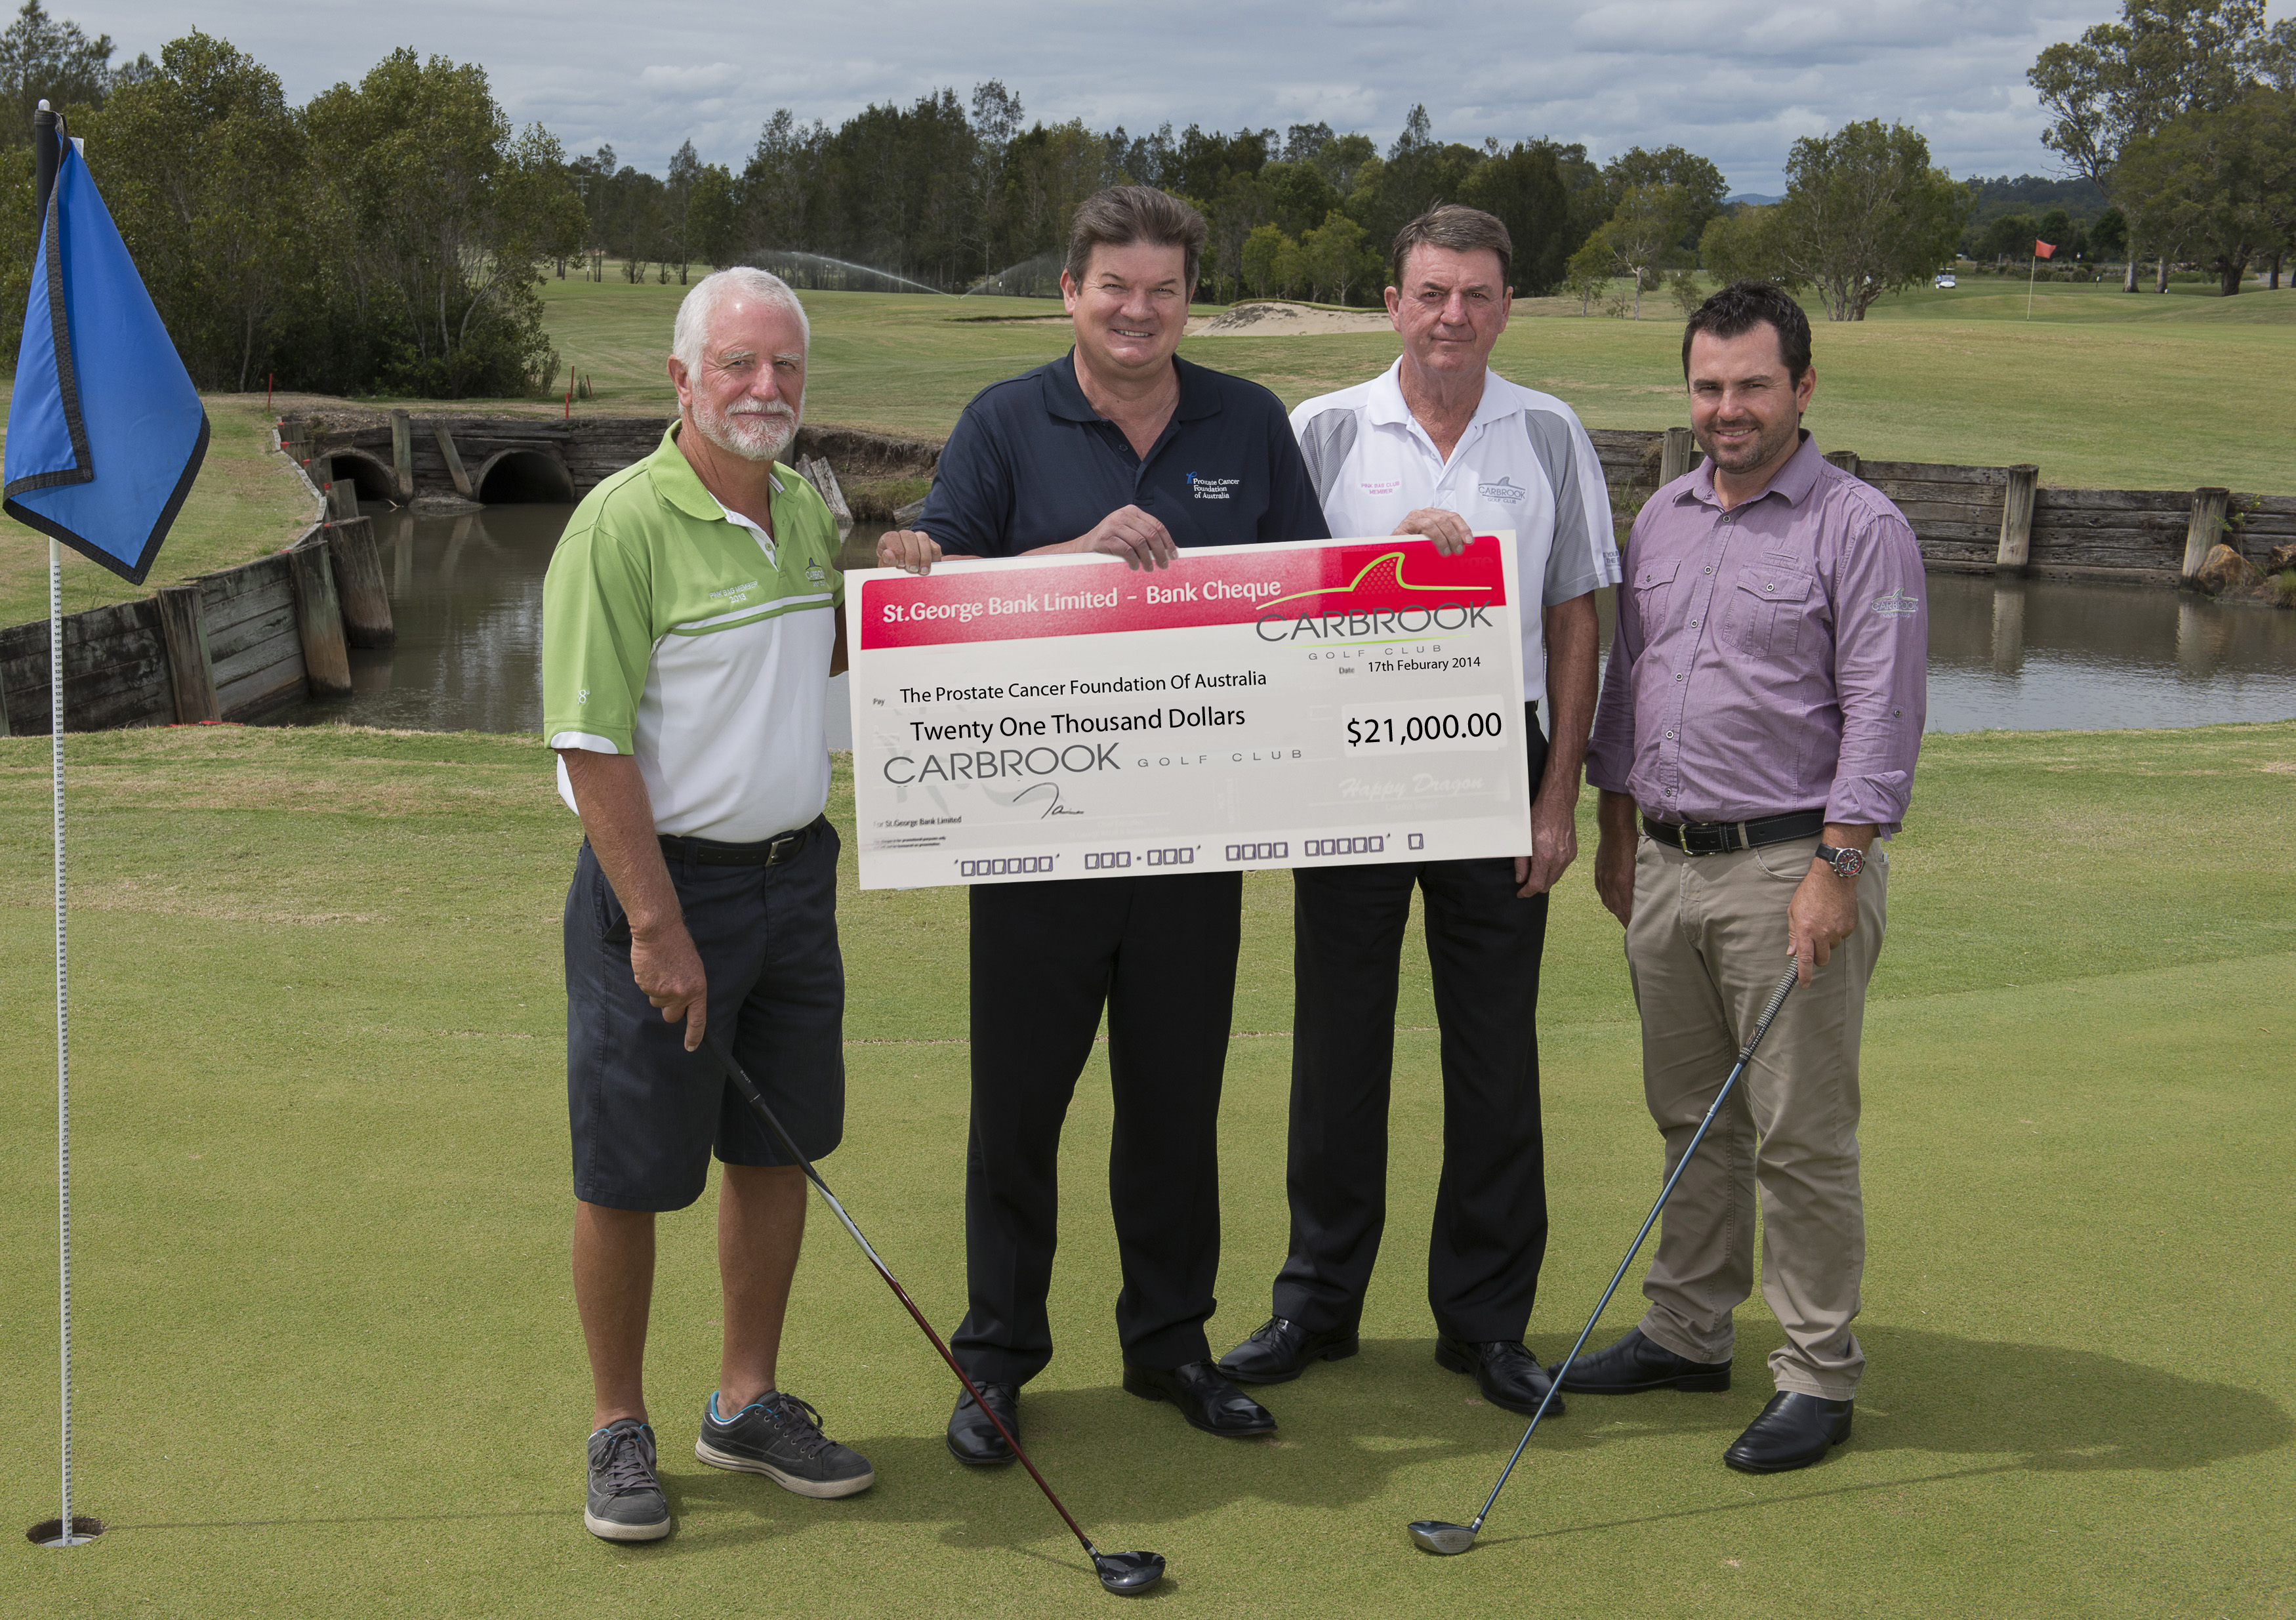 Carbrook cheque2 H